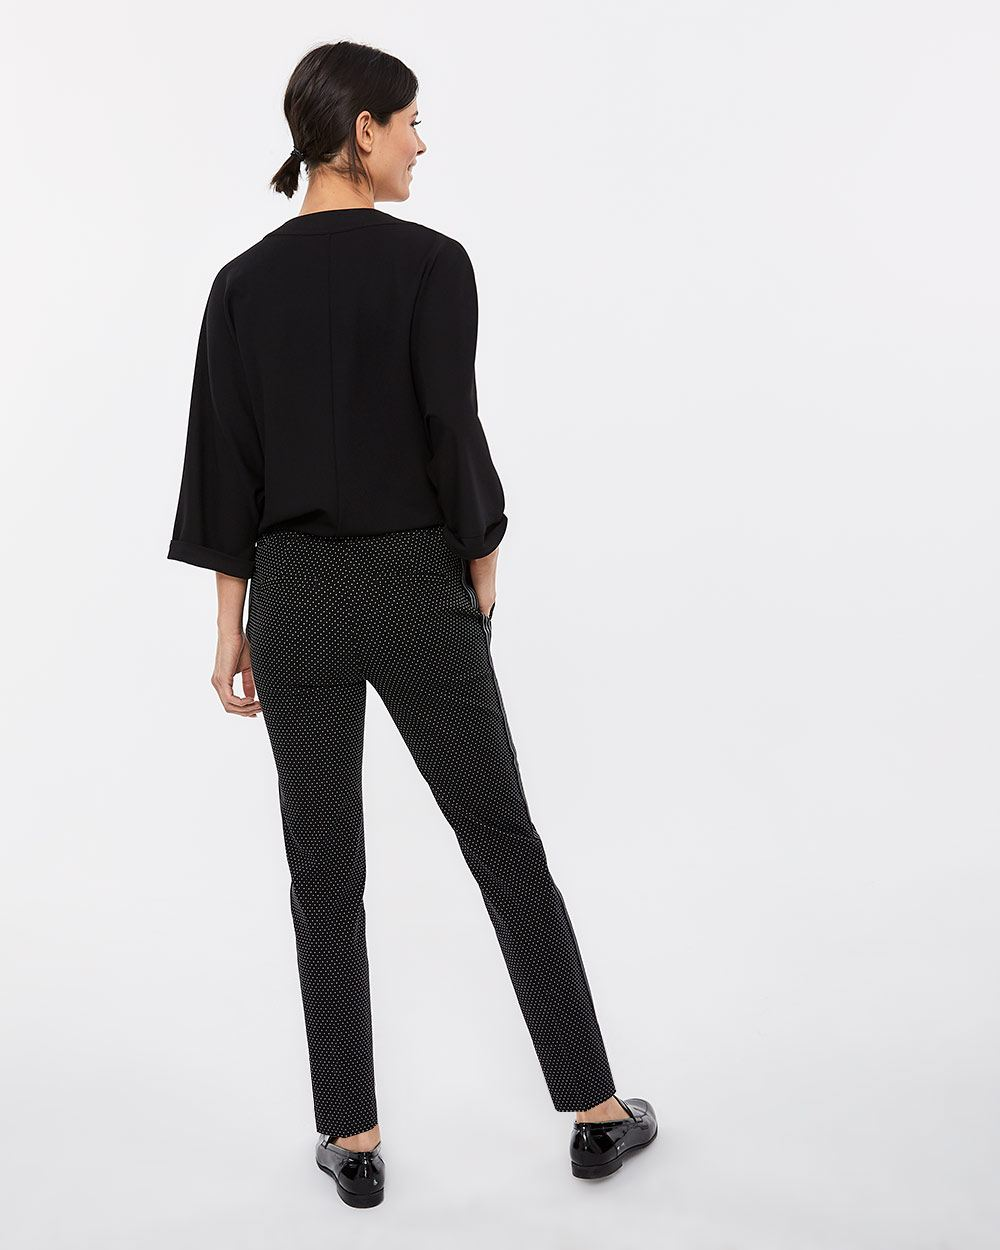 The Iconic Slim Leg Pants with Contrasting Band